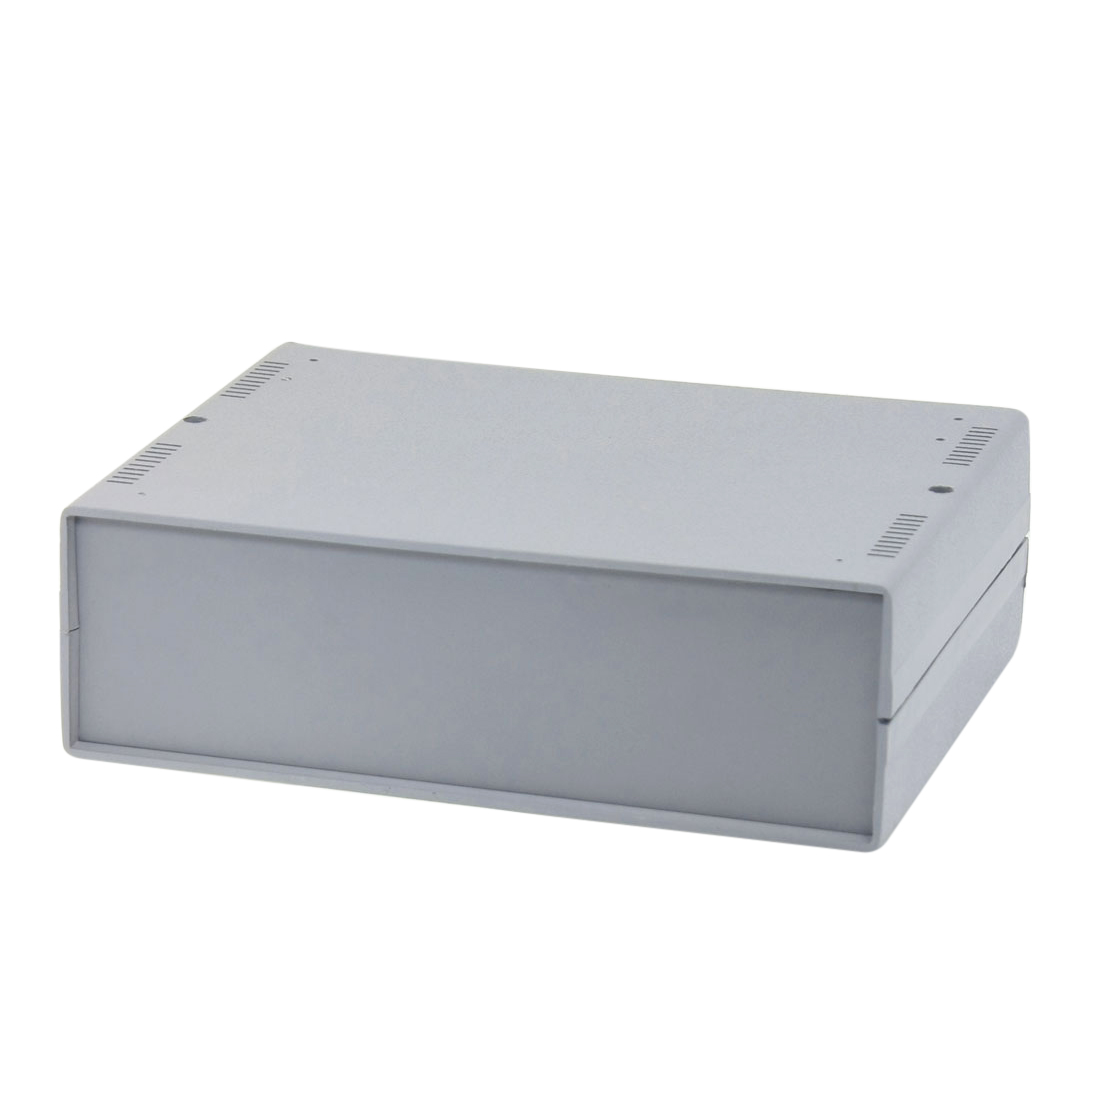 255mm x 190mm x 80mm Plastic Enclosure Case DIY Junction Box